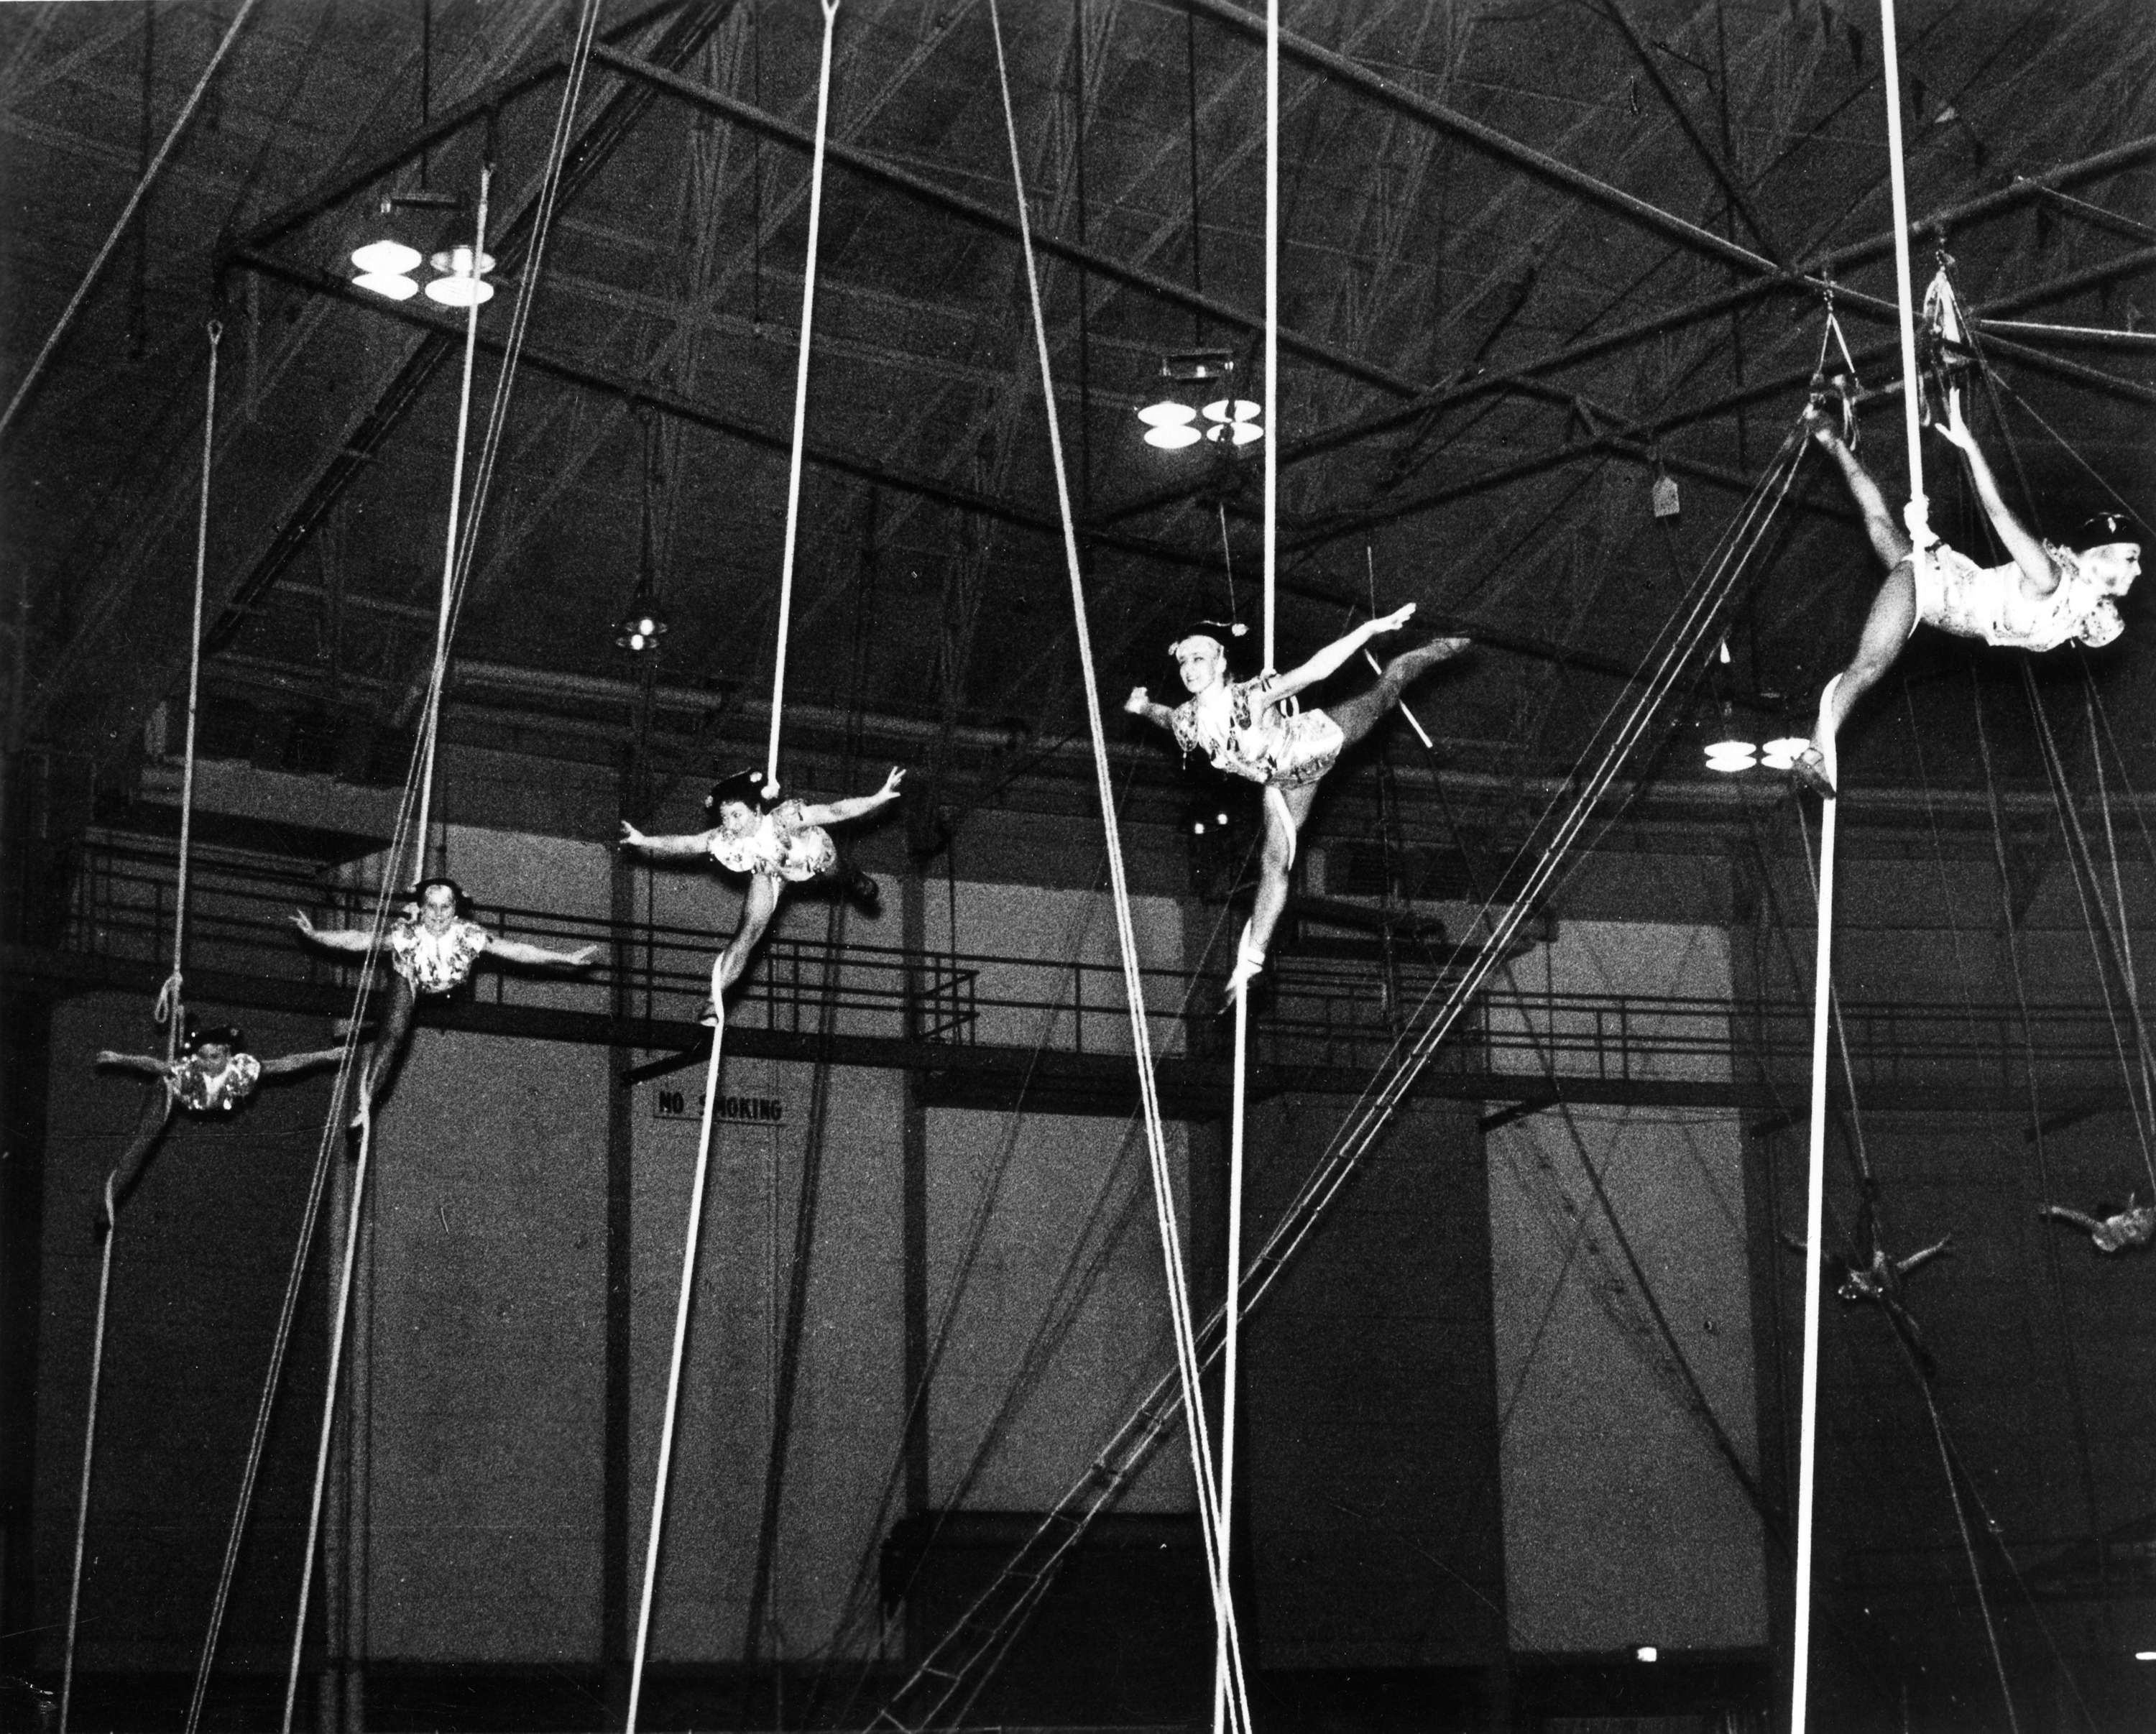 5 aerial acrobats hang perform on ropes